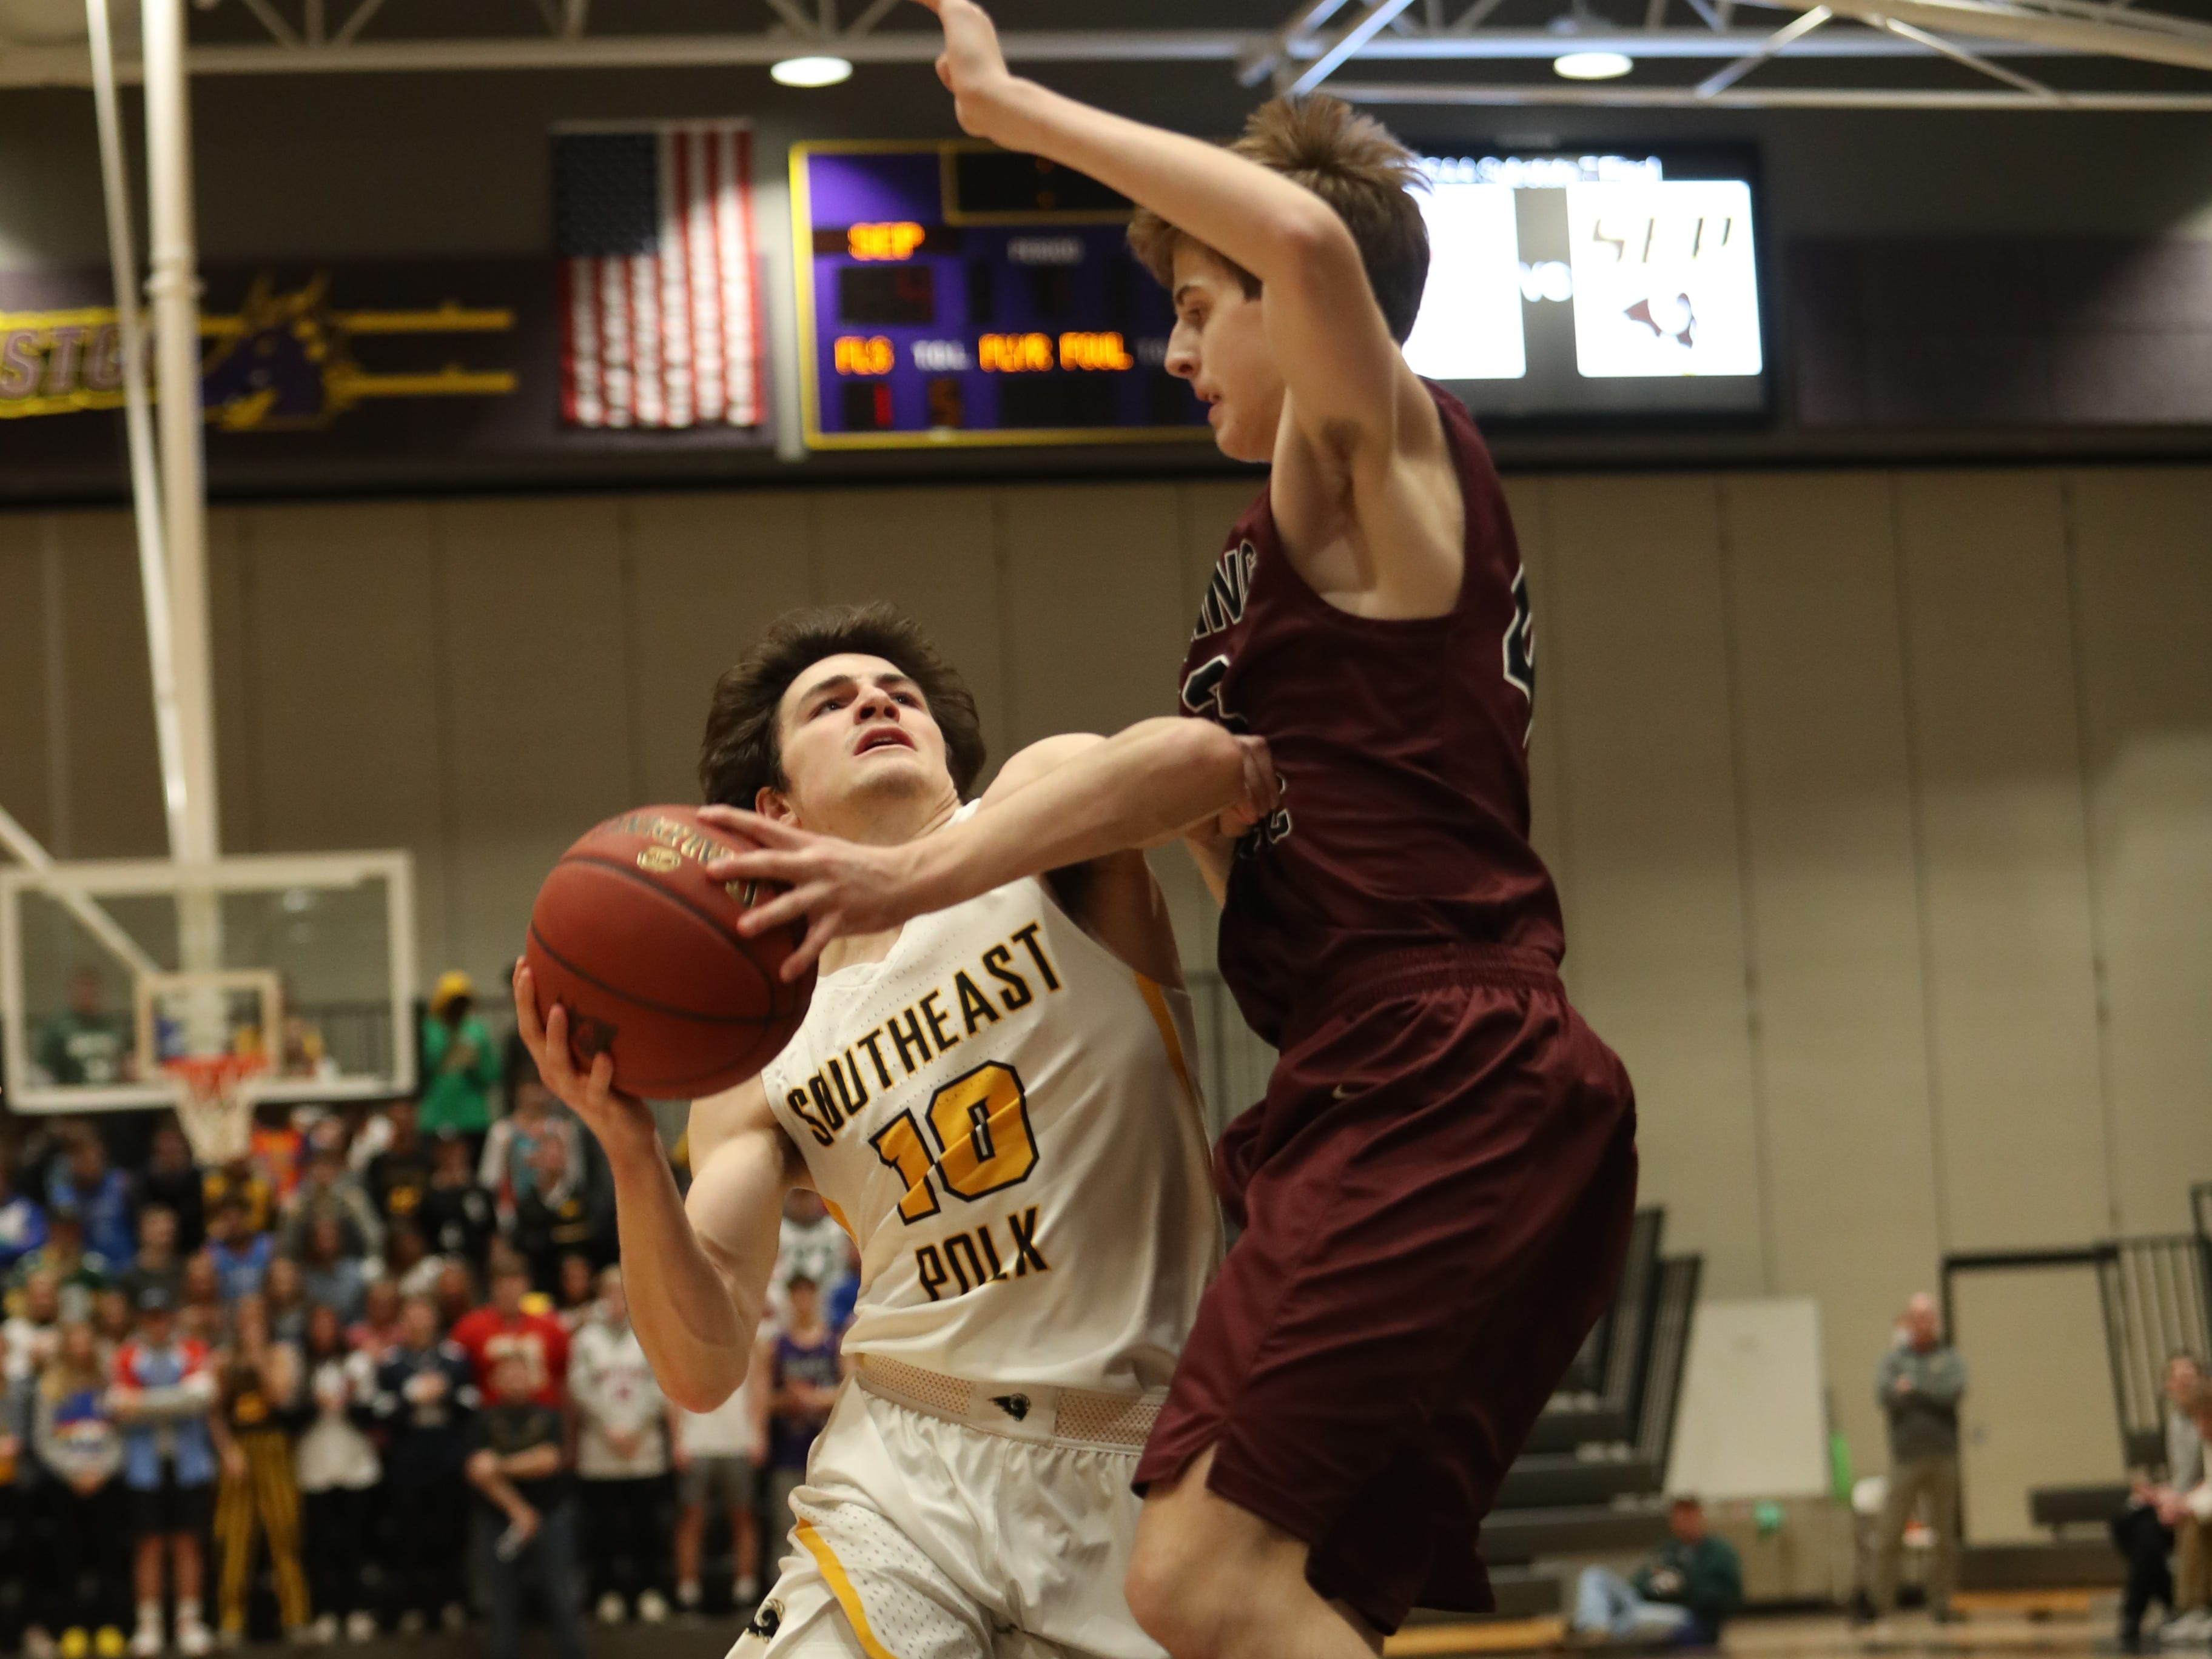 Southeast Polk's Daniel Hackbarth (10) drives the basket against the Dowling Catholic during their game at Johnston High School in Johnston, Iowa, on Tuesday, Feb. 26, 2019. Dowling won the game 44-40 to advance to state.